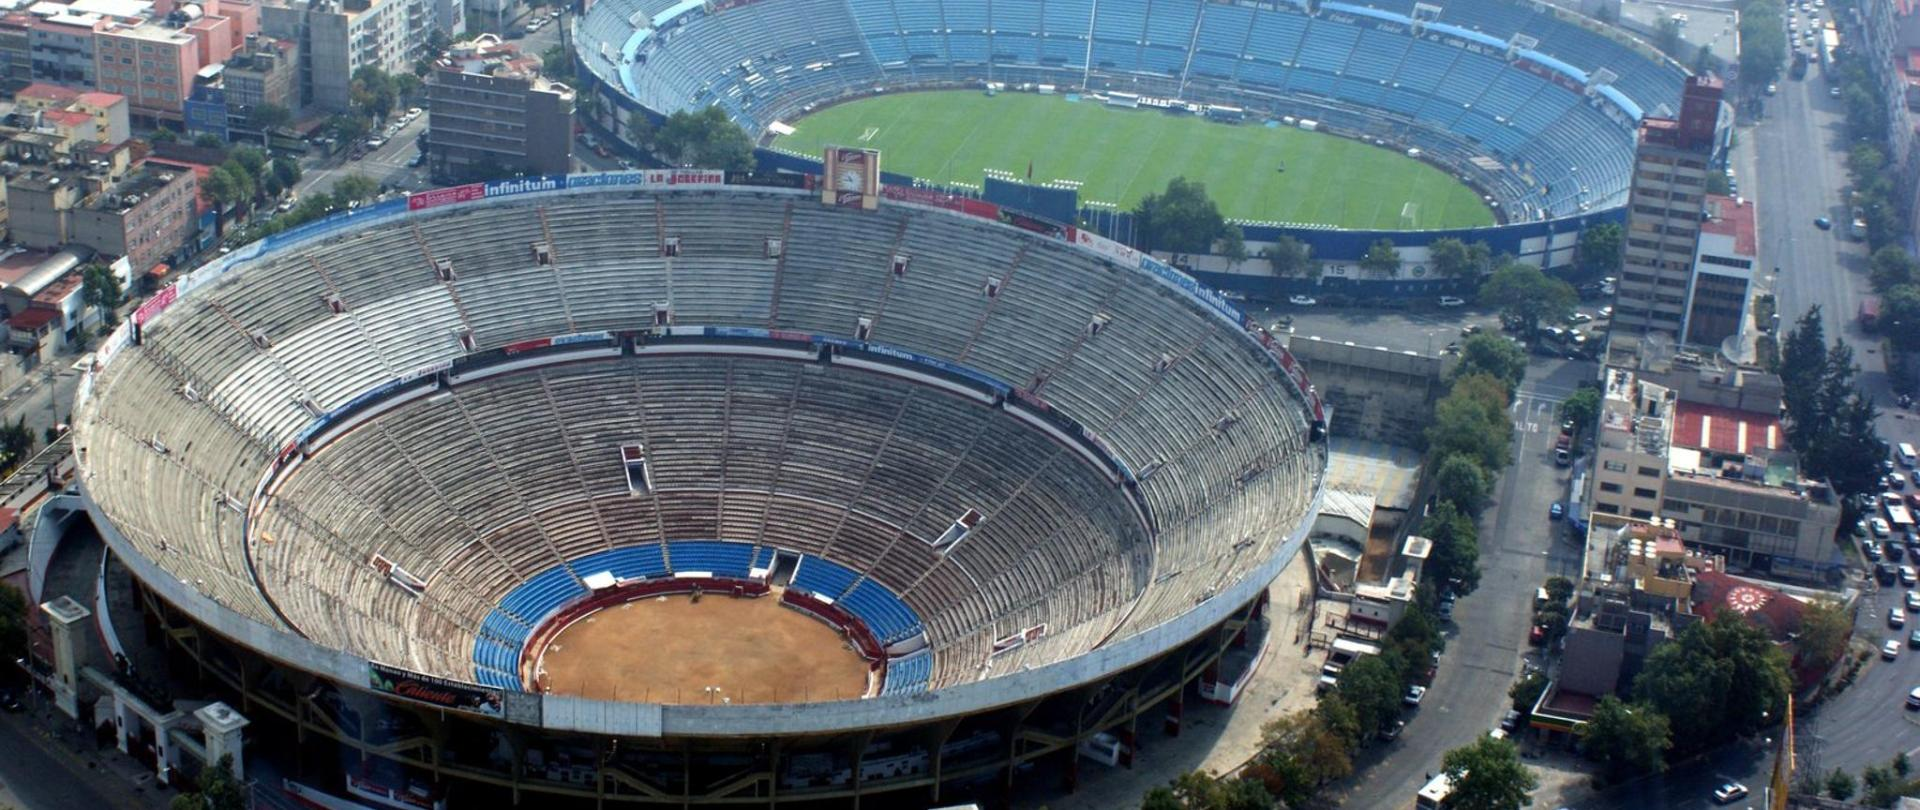 estadio_azul03.jpg